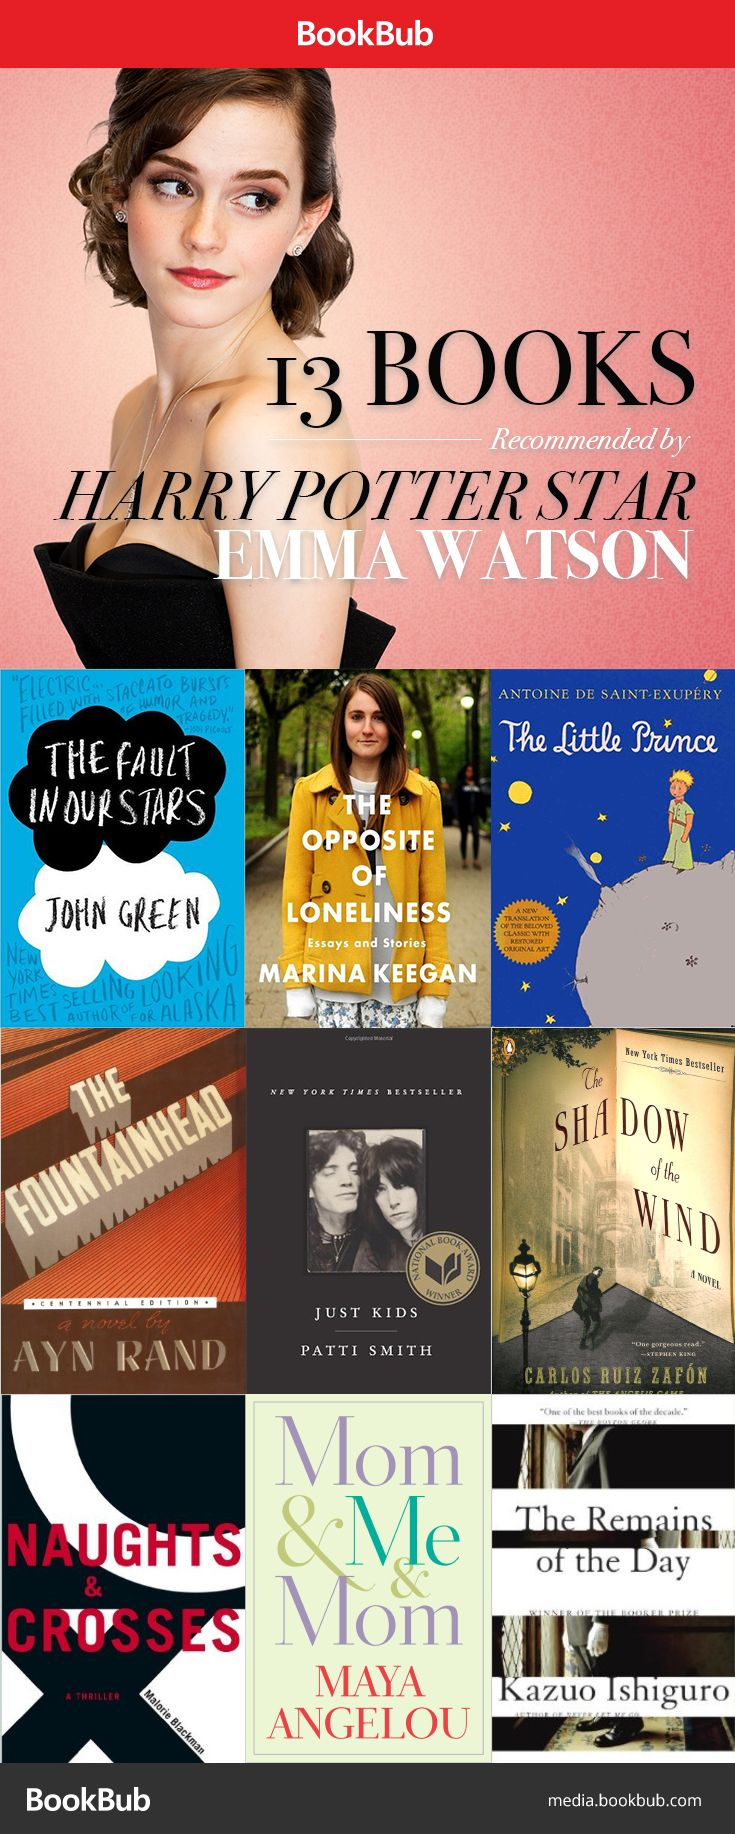 13 Books Recommended by 'Harry Potter' Star Emma WatsonStephanie Biediger